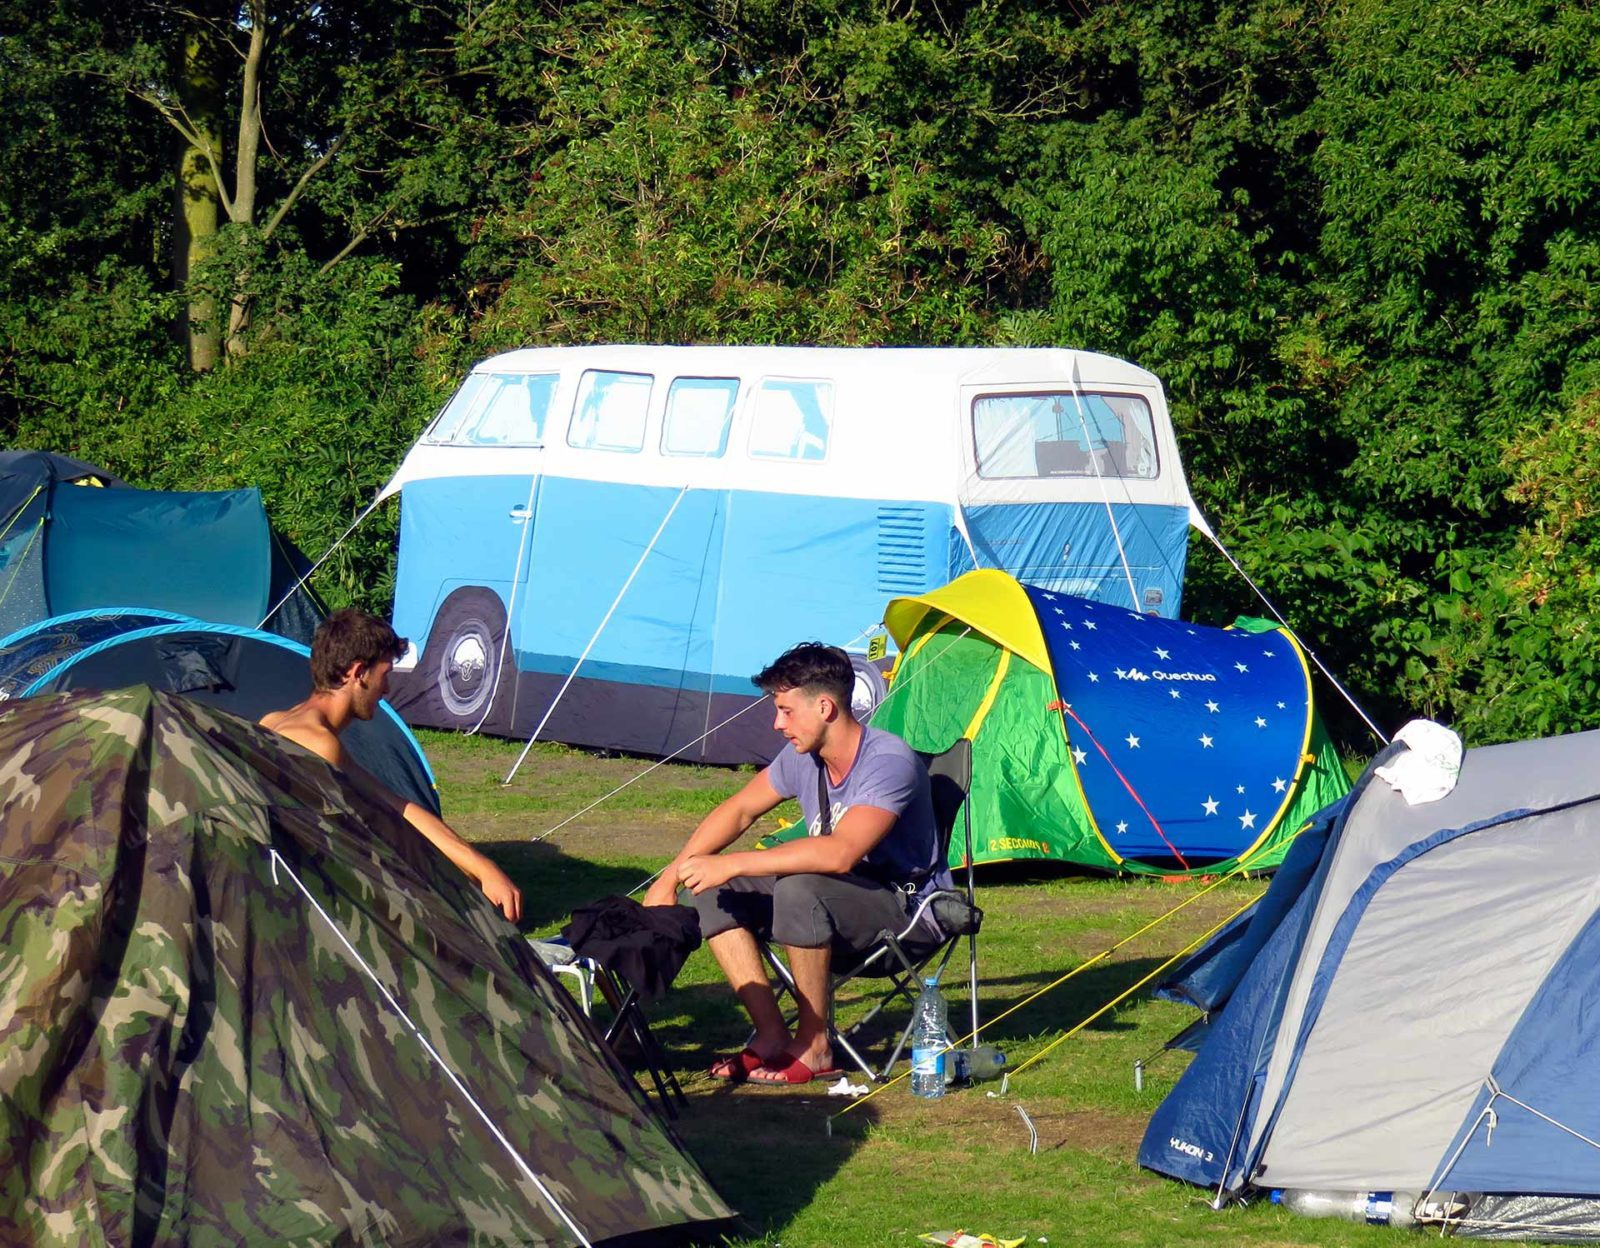 Inexpensive camping at Campsite Zeeburg Too